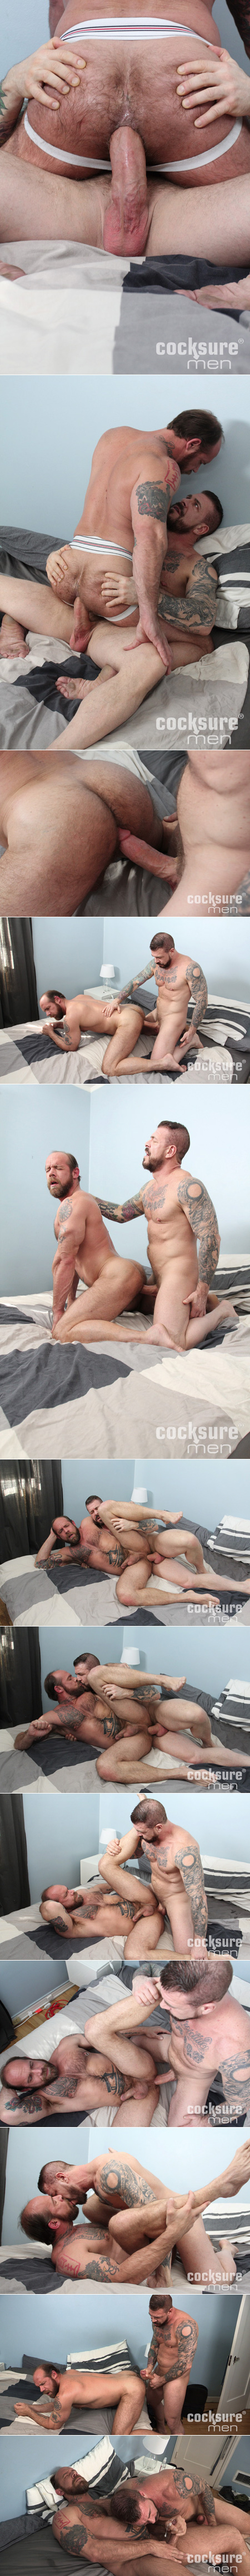 Tattooed muscle Daddies fucking bareback.